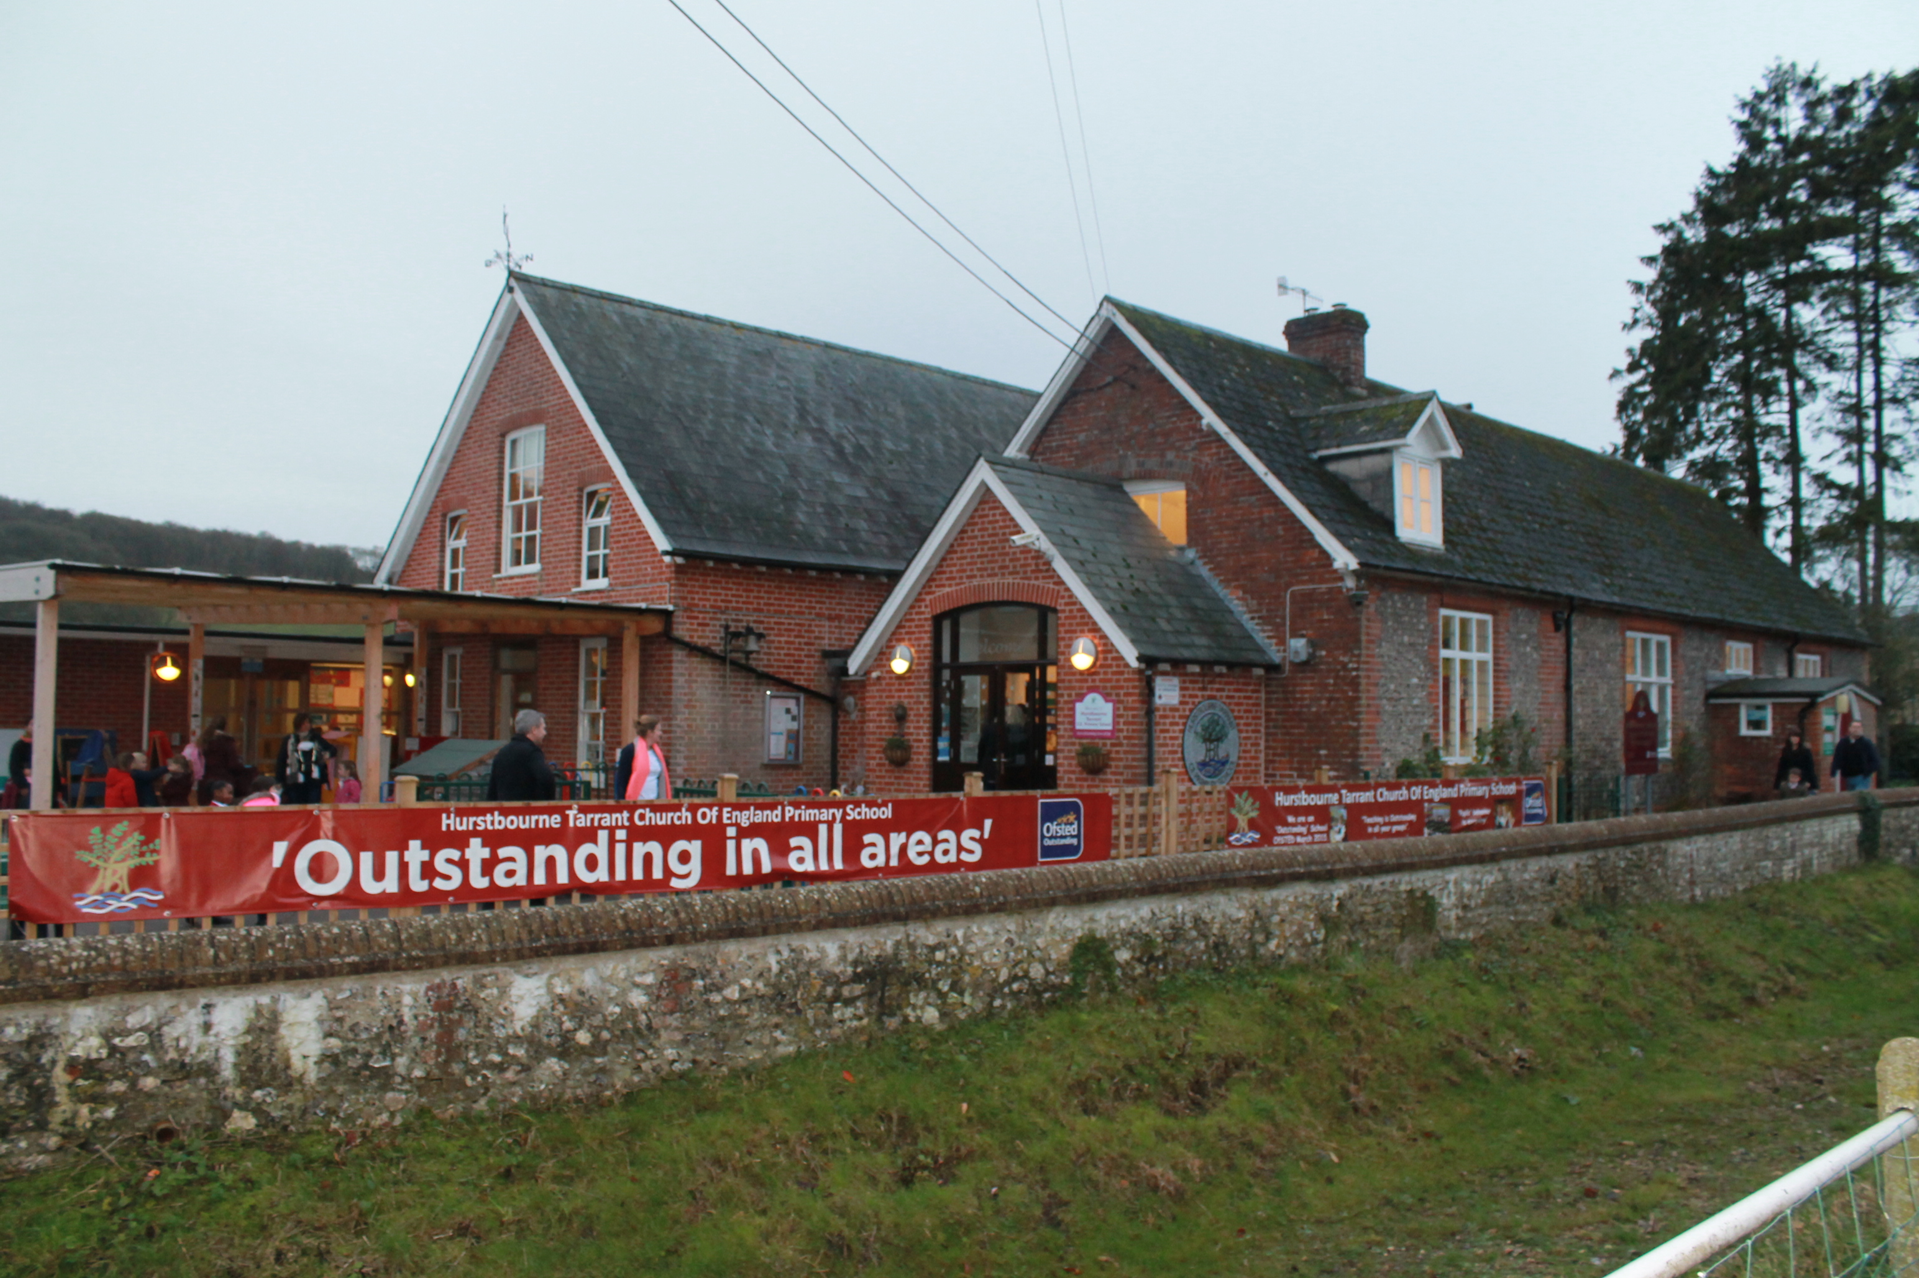 Hurstbourne Tarrant CE Primary School December 2015